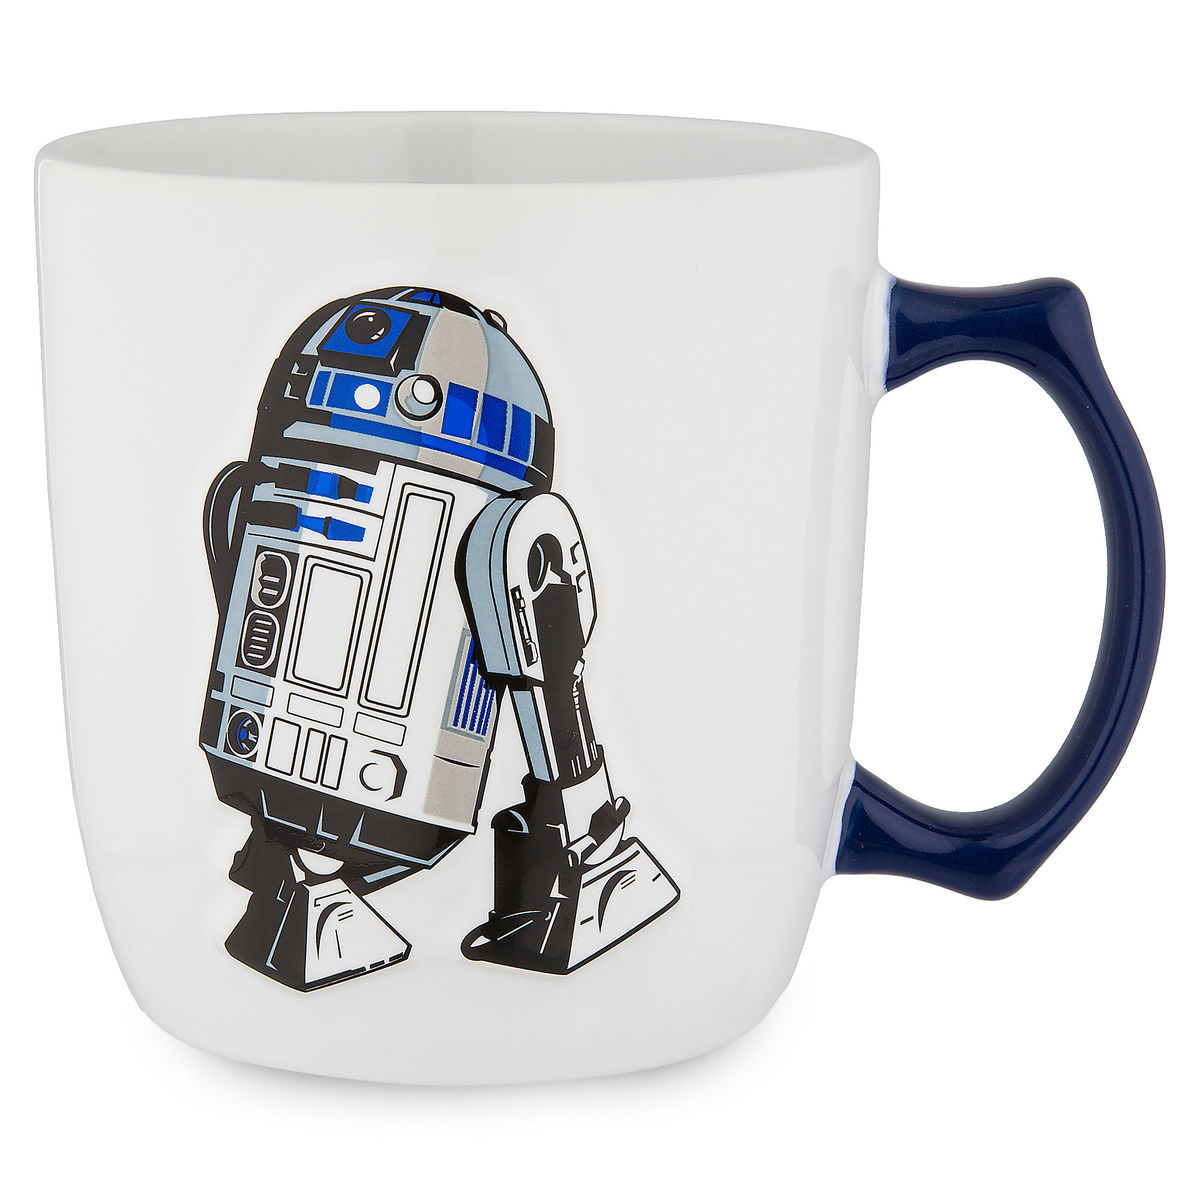 Details about  /Star Wars R2D2 Mug Boxed New Official Disney Gift Microwave /& Dish Washer Safe